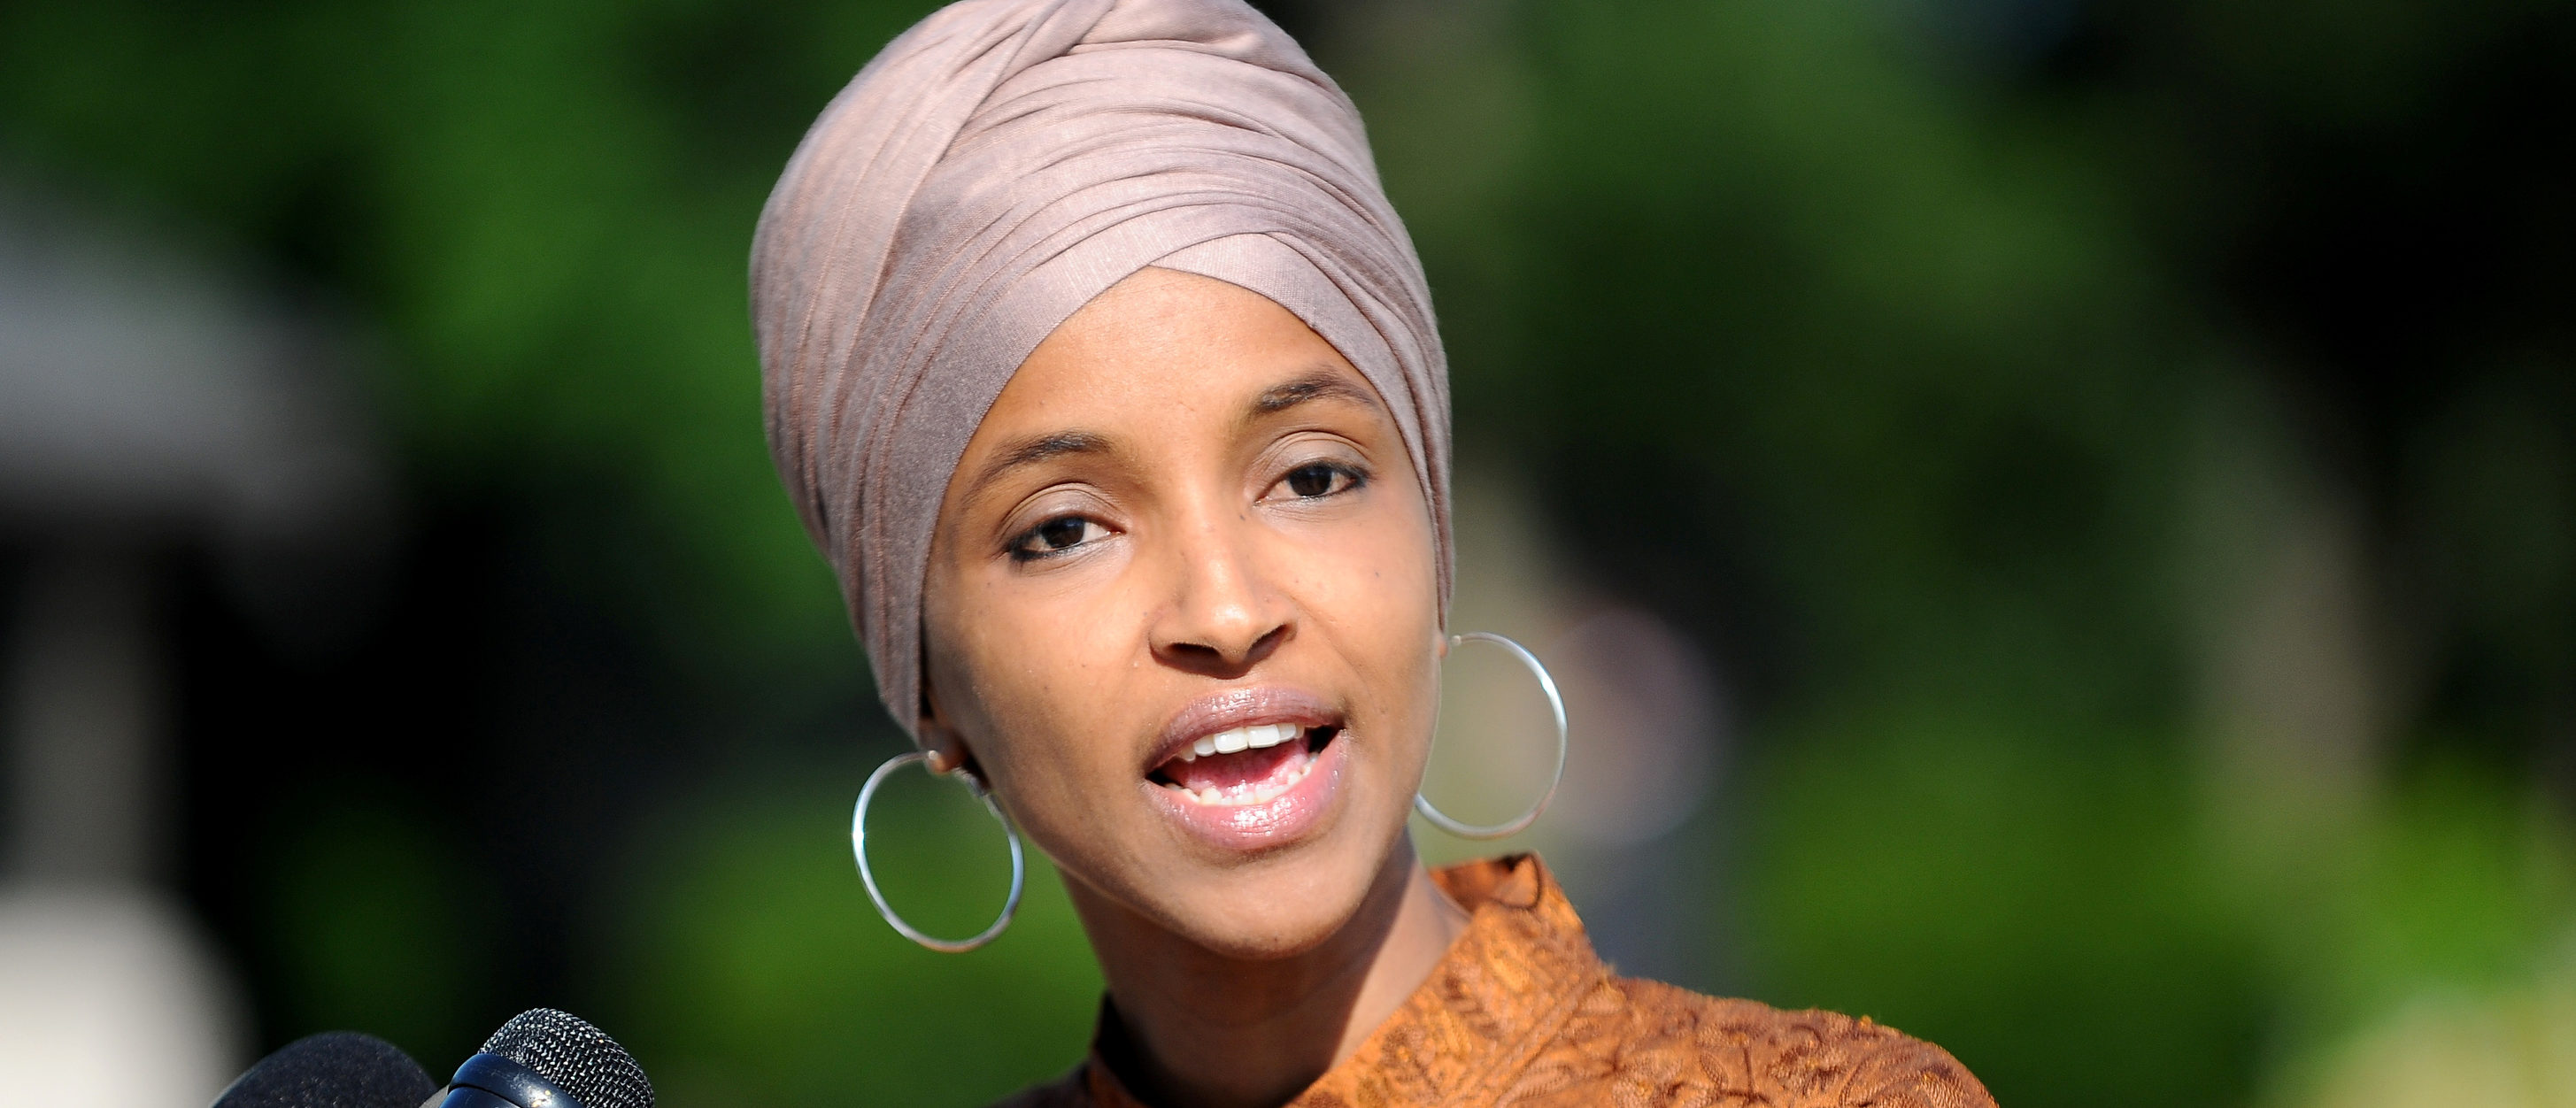 Ilhan Omar's Explanation For Deleting A Tweet That Revealed Her Father's Name Faces Contradictions